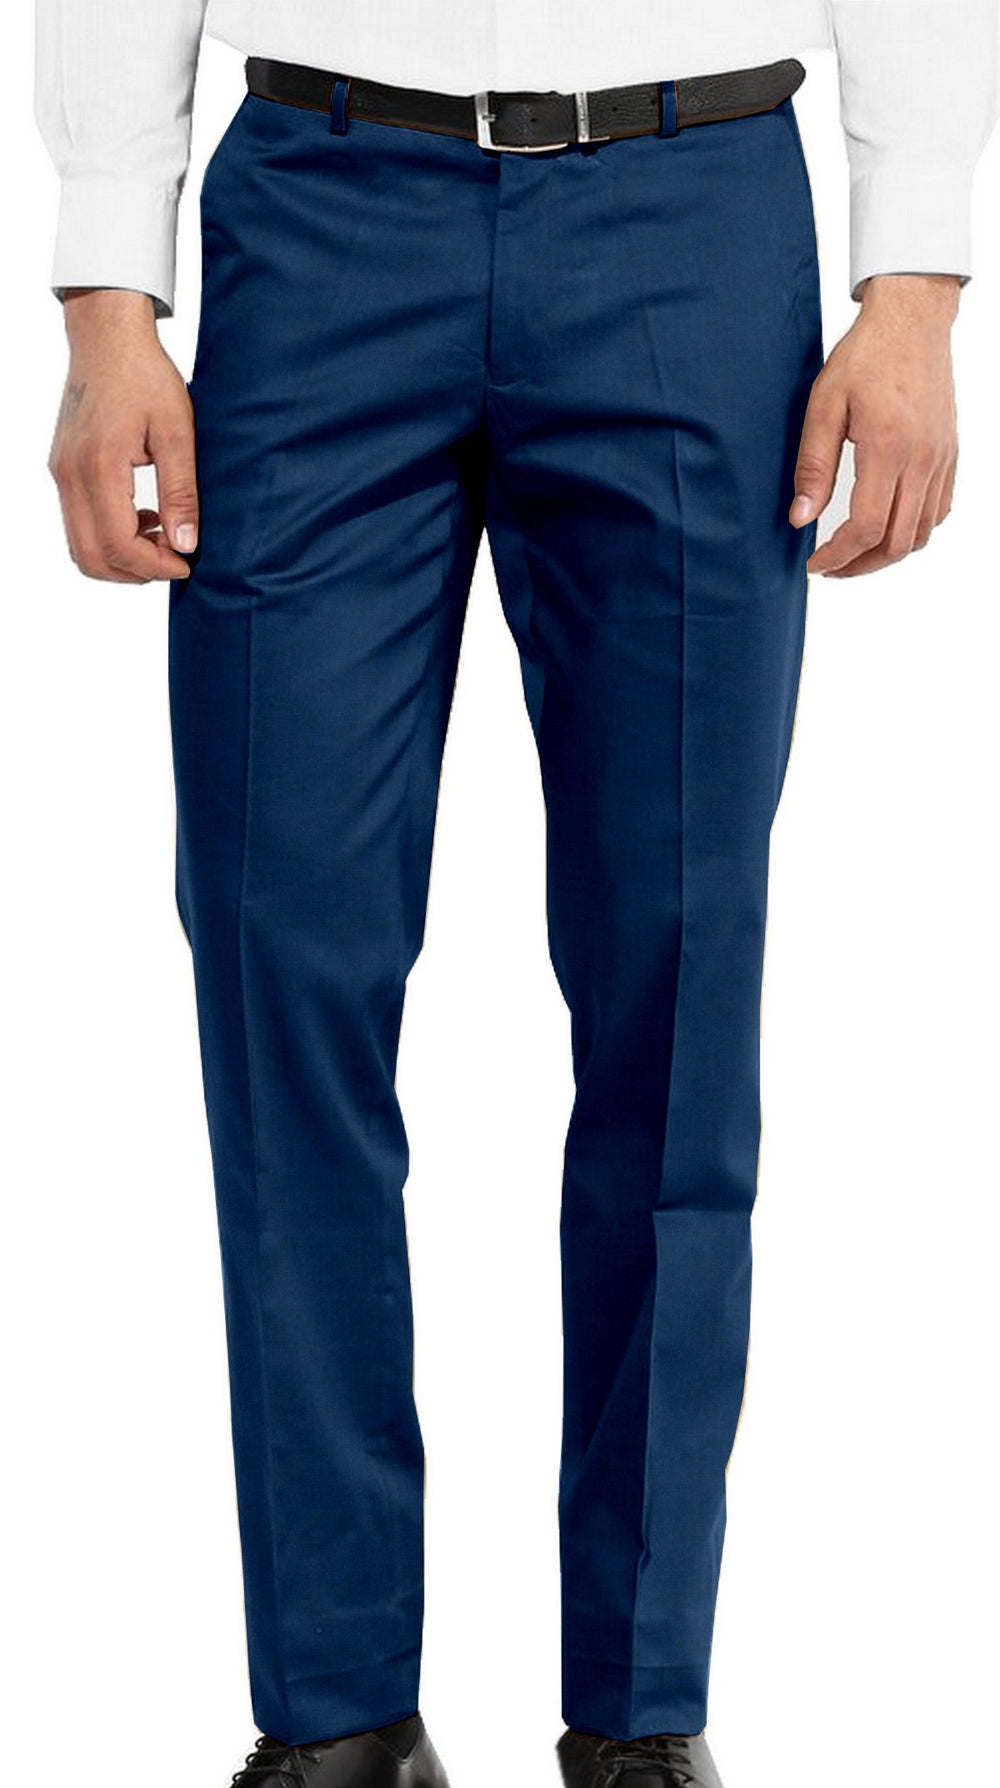 Washable Wool Pants: Dark Teal Blue (8347322824)